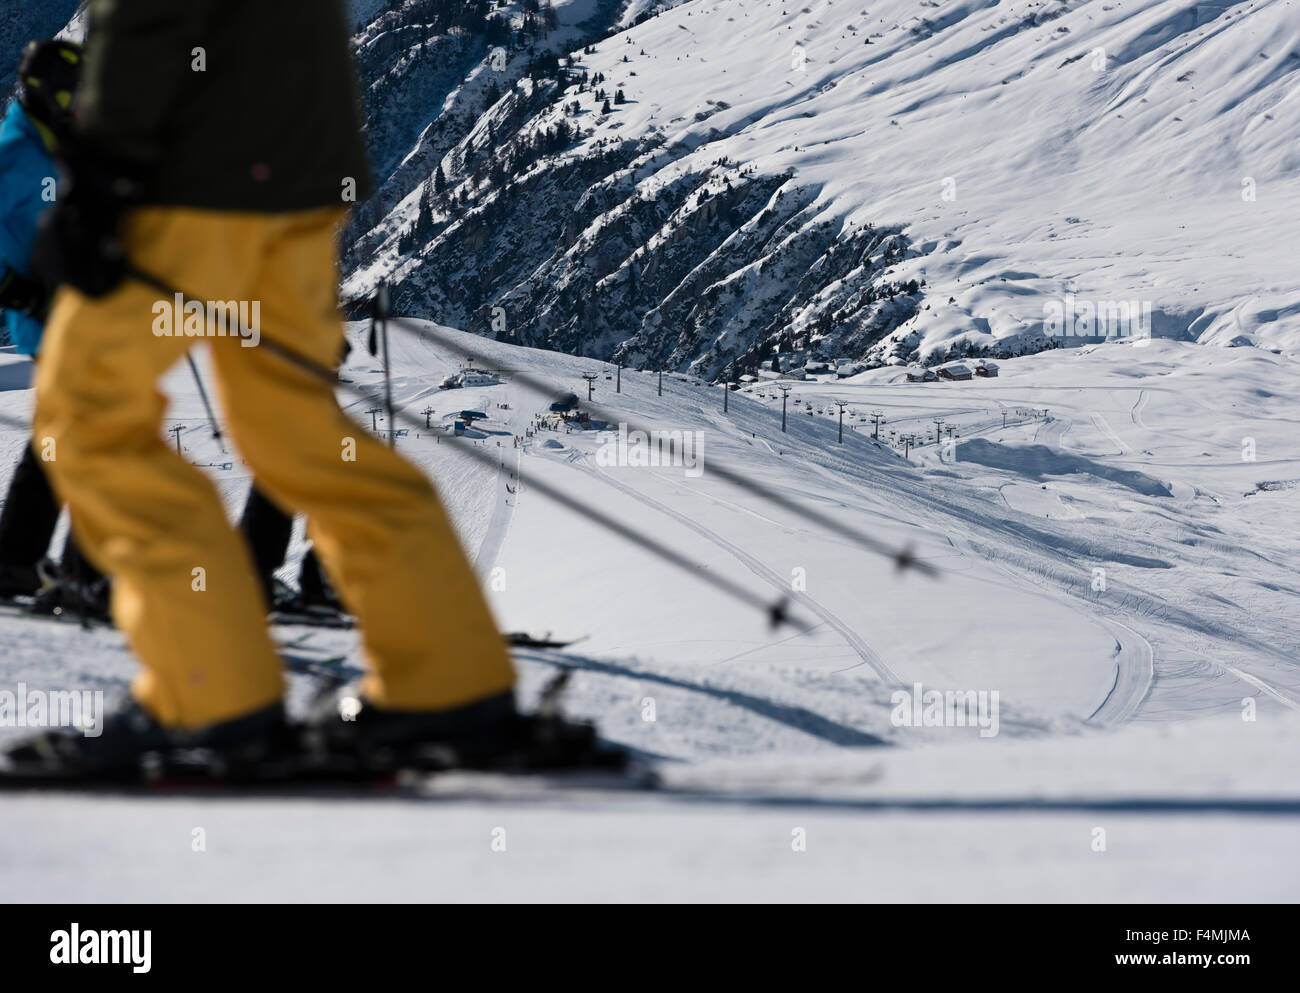 Busy skiers on a ski piste in Switzerland (Belalp / canton Valais) - Stock Image